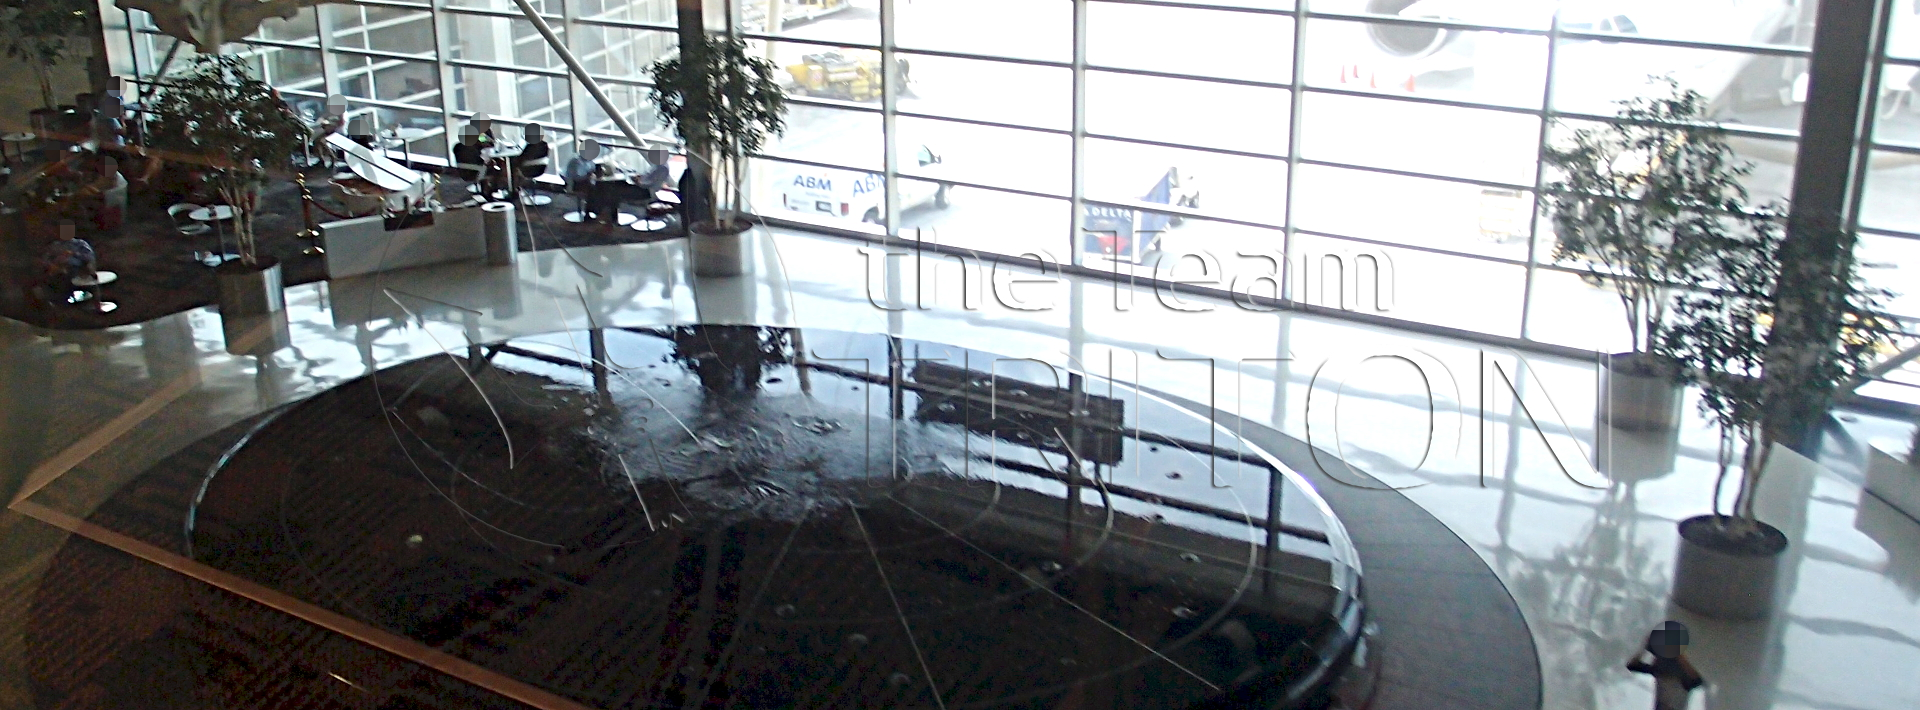 DTW-airport-lobby-001